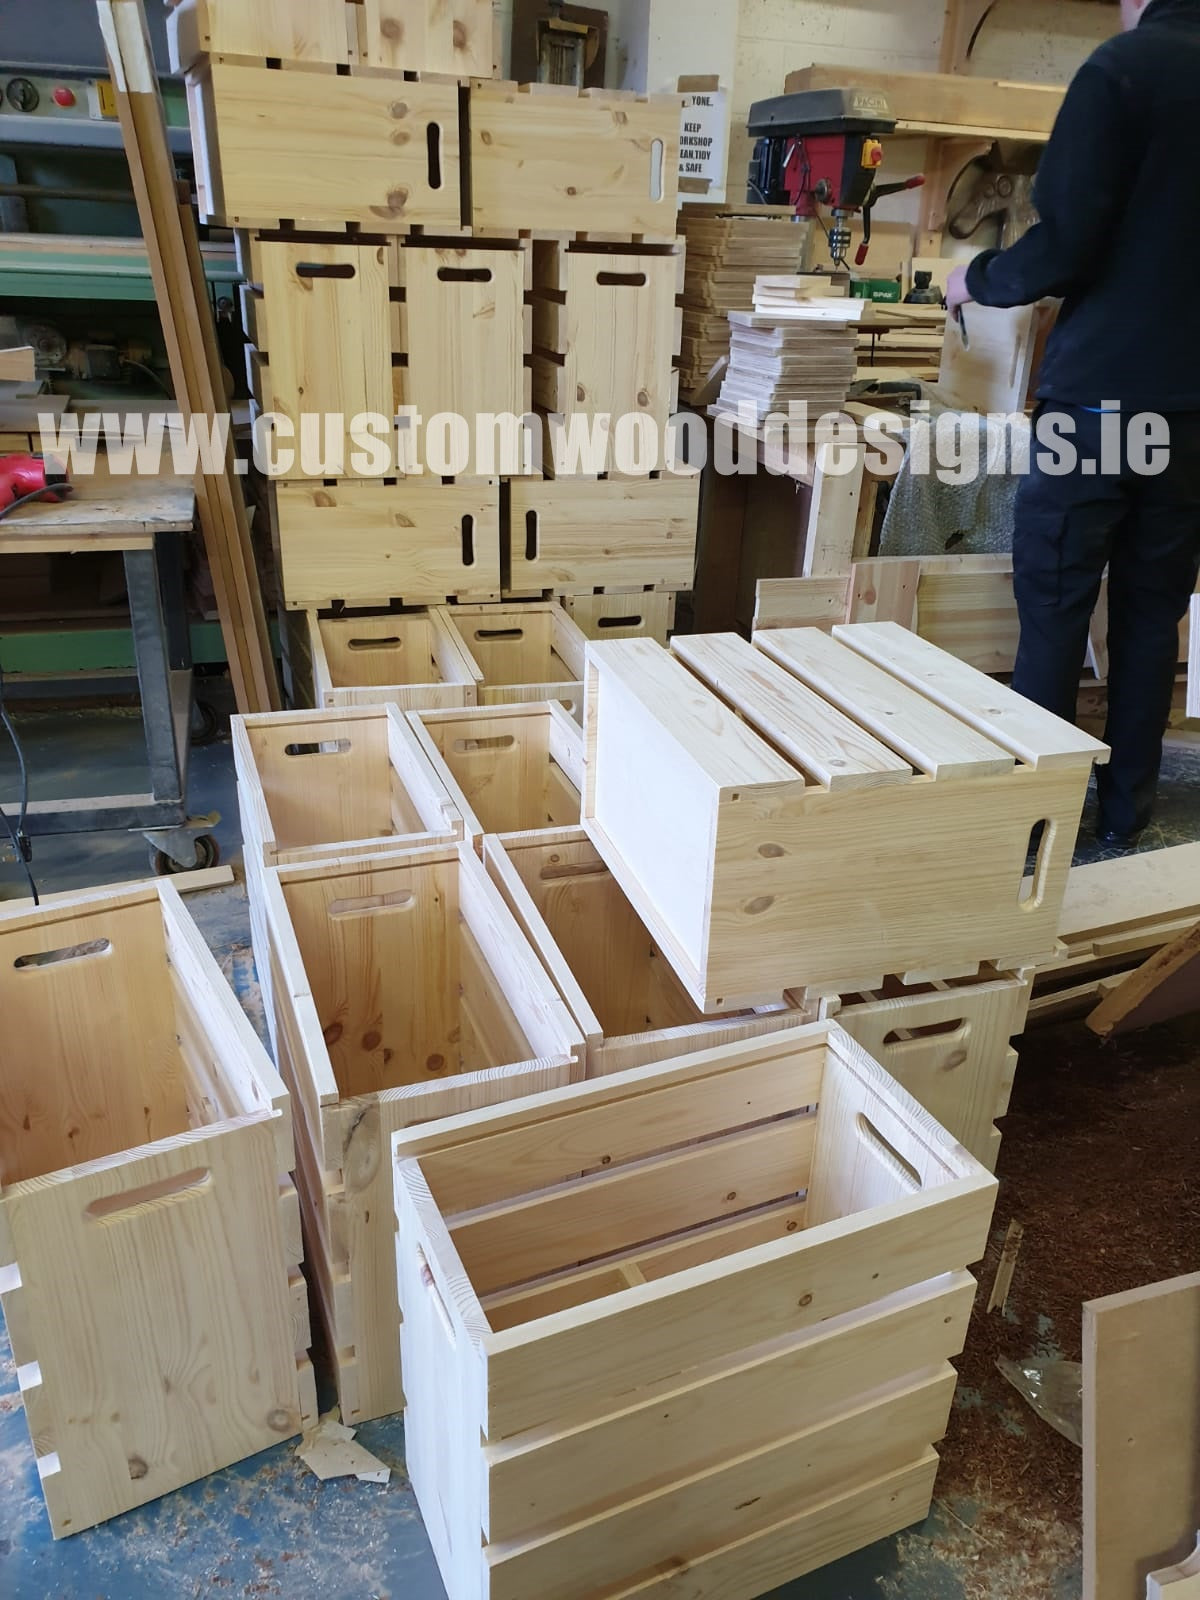 product carroer crates crates custom wood designs retail display crates display retail boxes old fashioned rustic brown crates white crates brandded crates dubklin crates irish crates vegetable shop crate box handle crates with dublin irealnd irish mass sproduced wholesale display retail strong crates branded laser engraved crates and boxes dublin irealnd